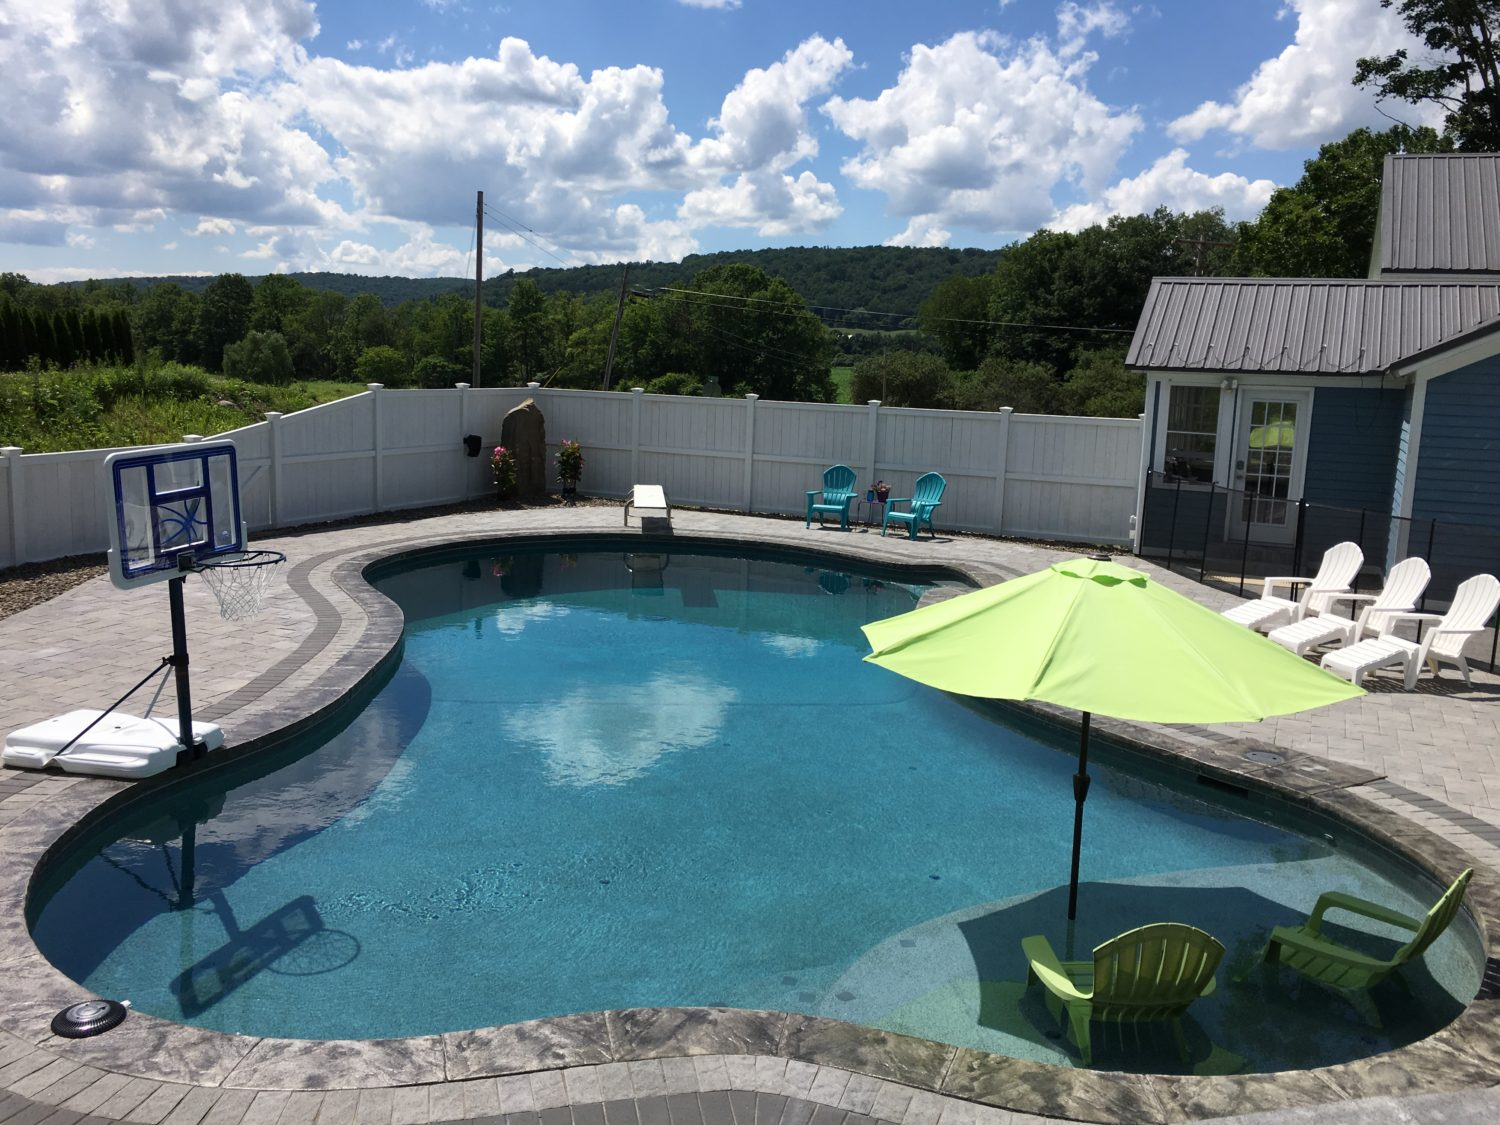 inground pool, Free form pool with sun ledge and diving board, swim jet, Syracuse NY